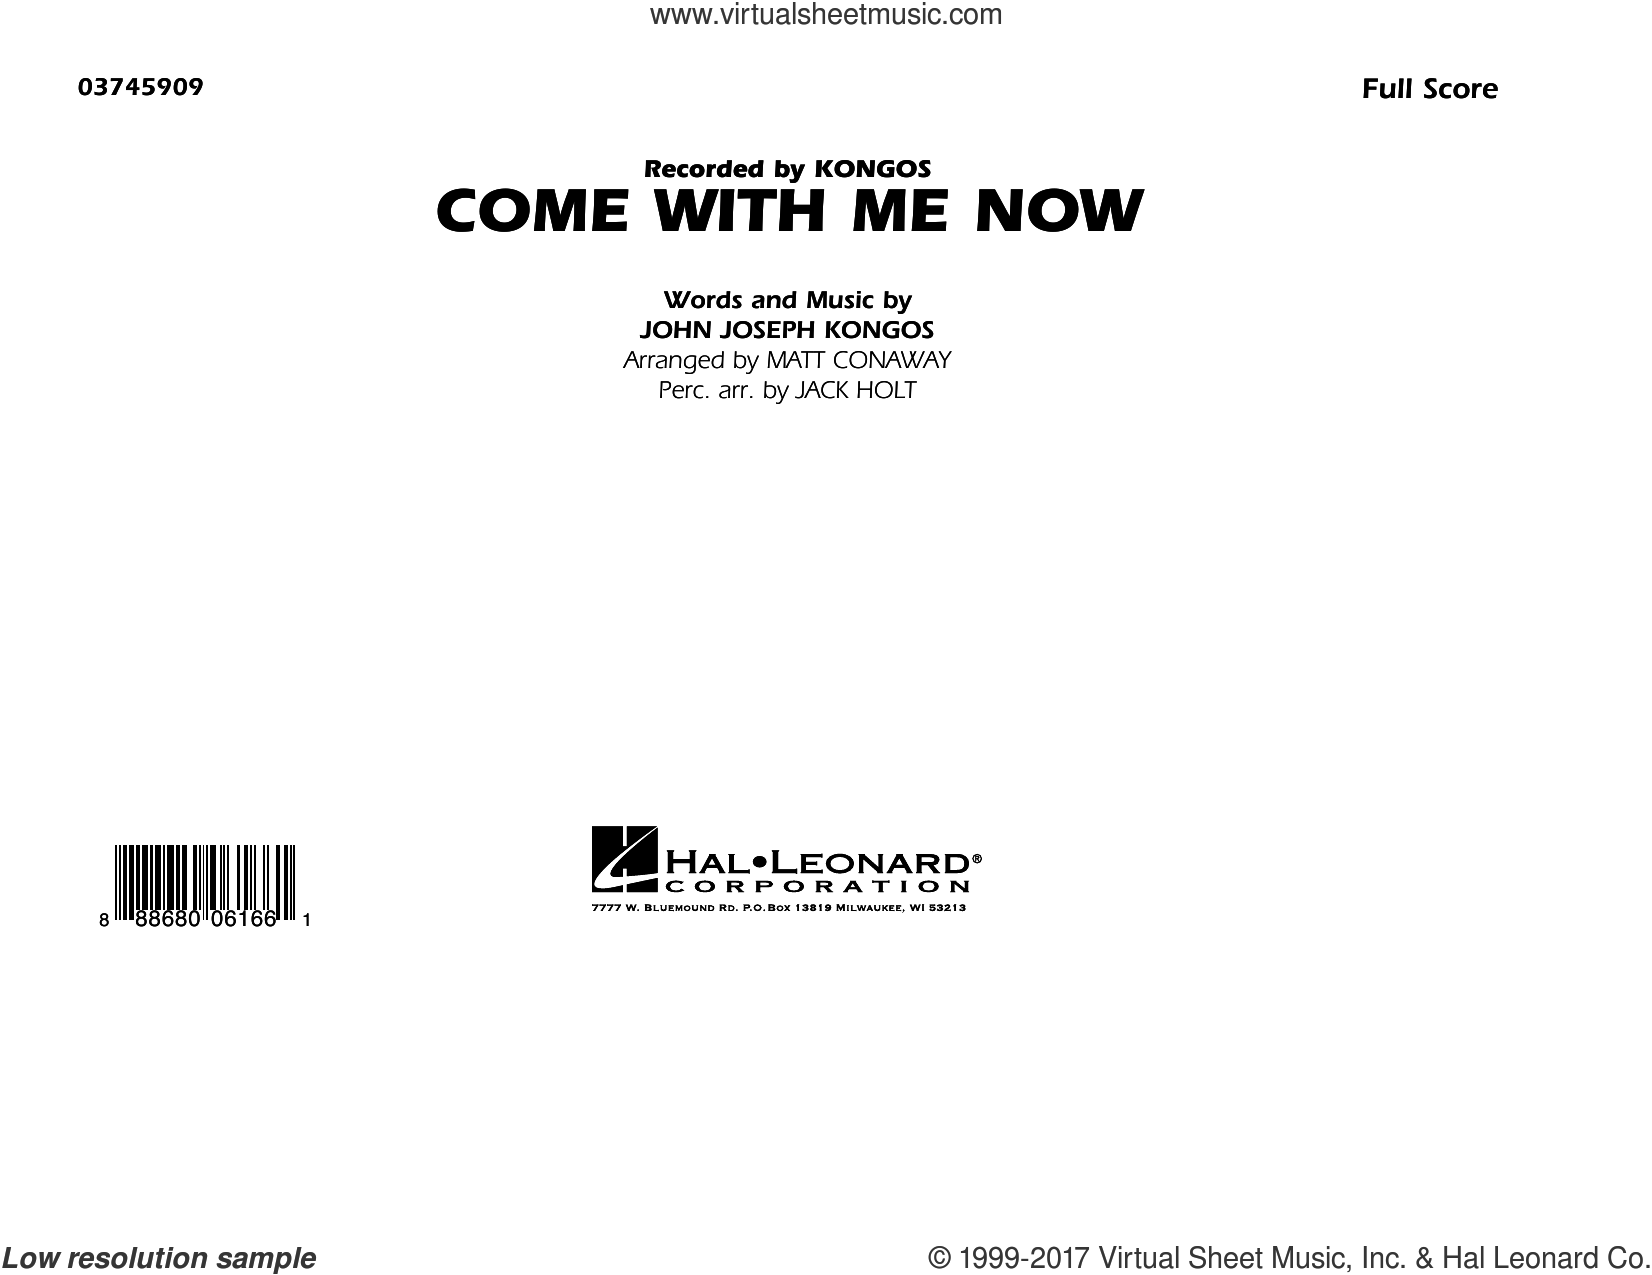 Come with Me Now (COMPLETE) sheet music for marching band by Matt Conaway, John Joseph Kongos and Kongos, intermediate skill level